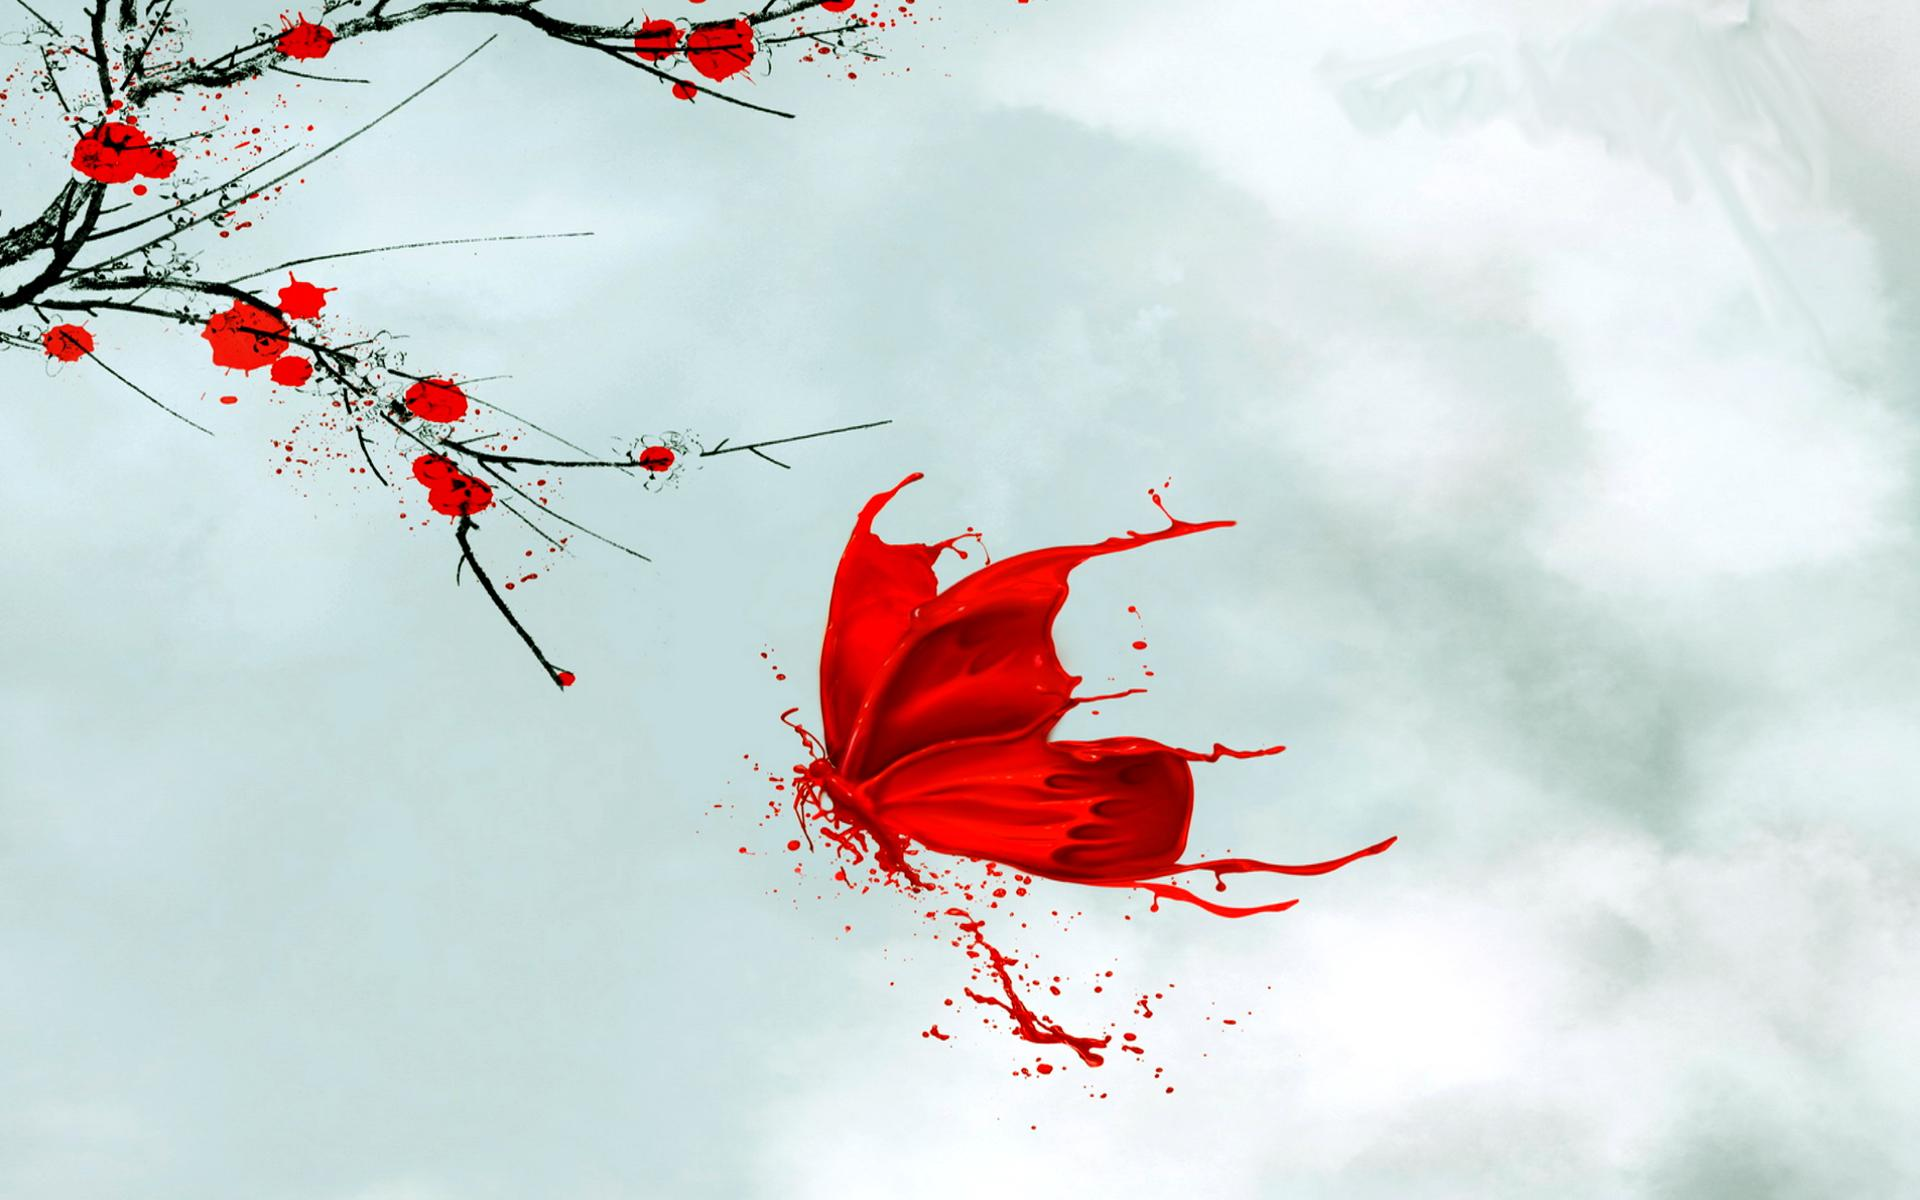 Red butterfly background - photo#28